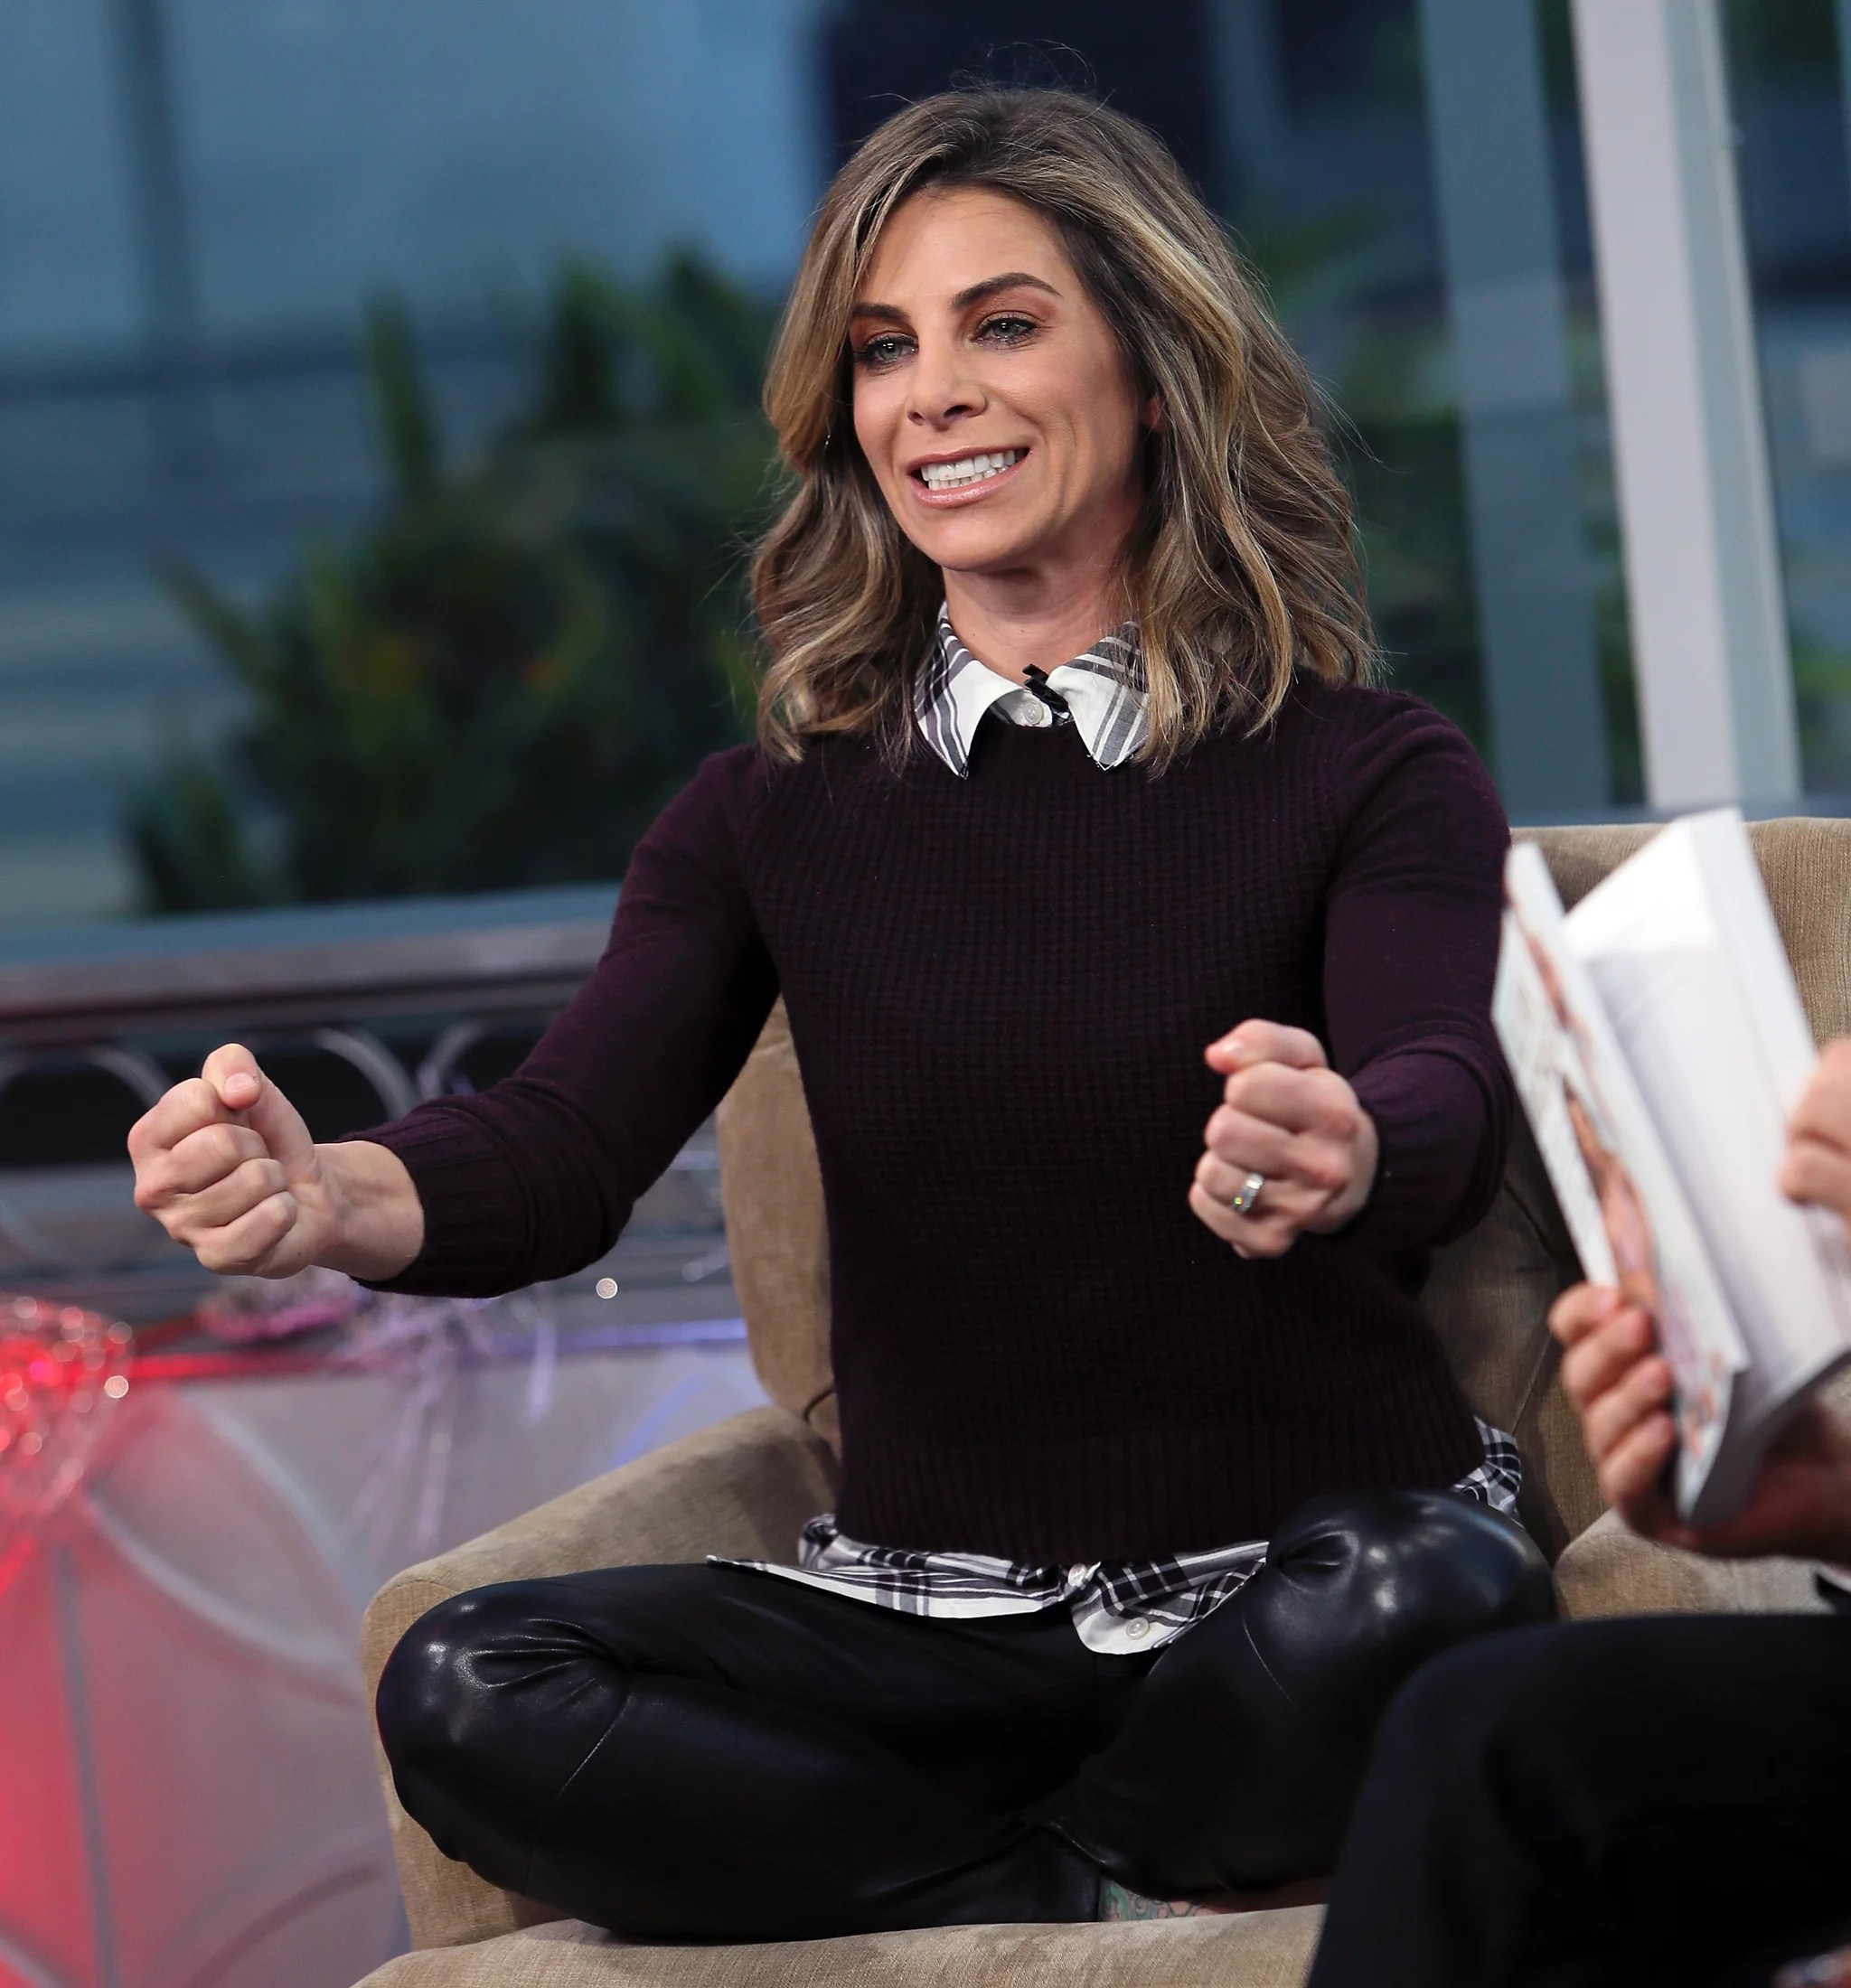 HOLLYWOOD, CA - DECEMBER 02:  TV personality/author Jillian Michaels visits Hollywood Today Live at W Hollywood on December 2, 2016 in Hollywood, California.  (Photo by David Livingston/Getty Images)